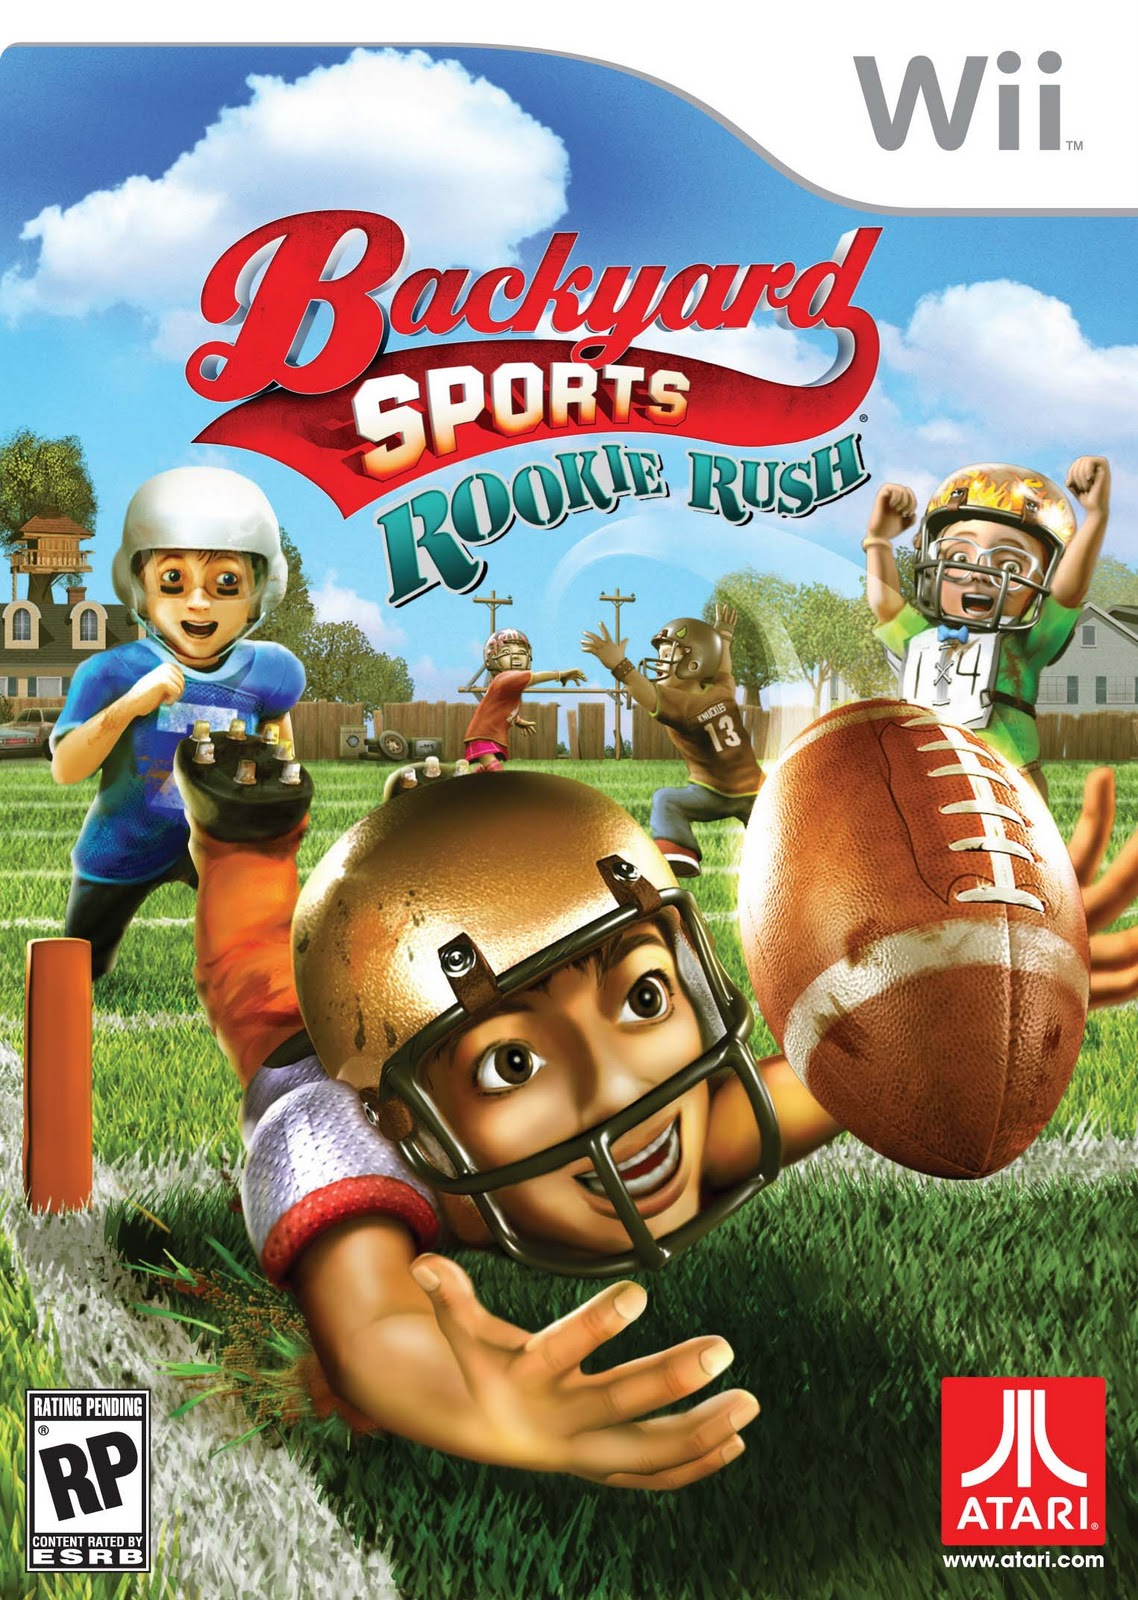 Backyard Football Video Game backyard sports: rookie rush | humongous entertainment games wiki